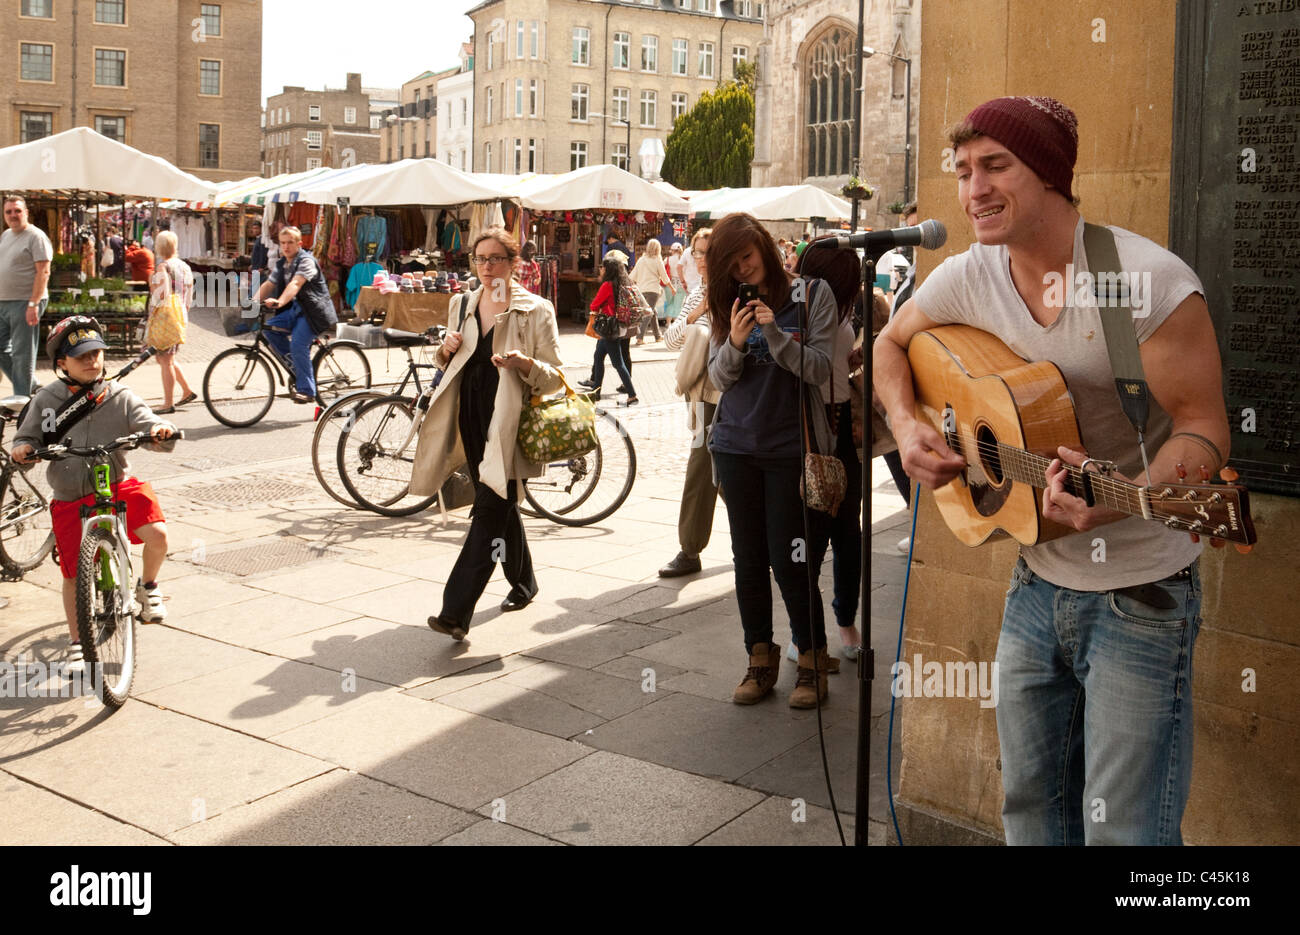 People watching a busker singing with guitar, the Market Square, Cambridge UK - Stock Image